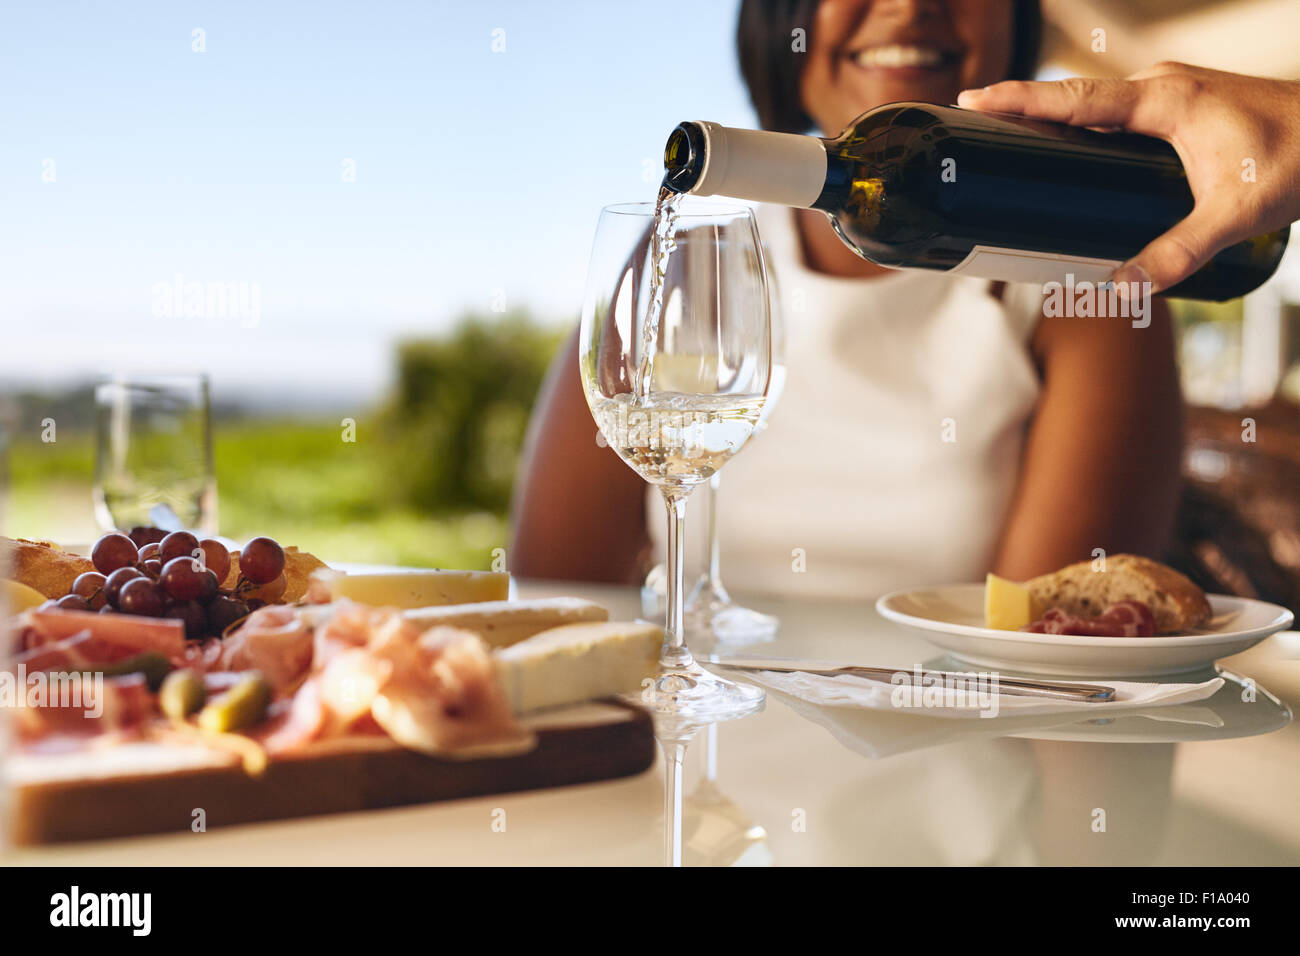 Hands of a man pouring white wine in two glasses from bottle with a woman smiling in background at winery. Focus Stock Photo